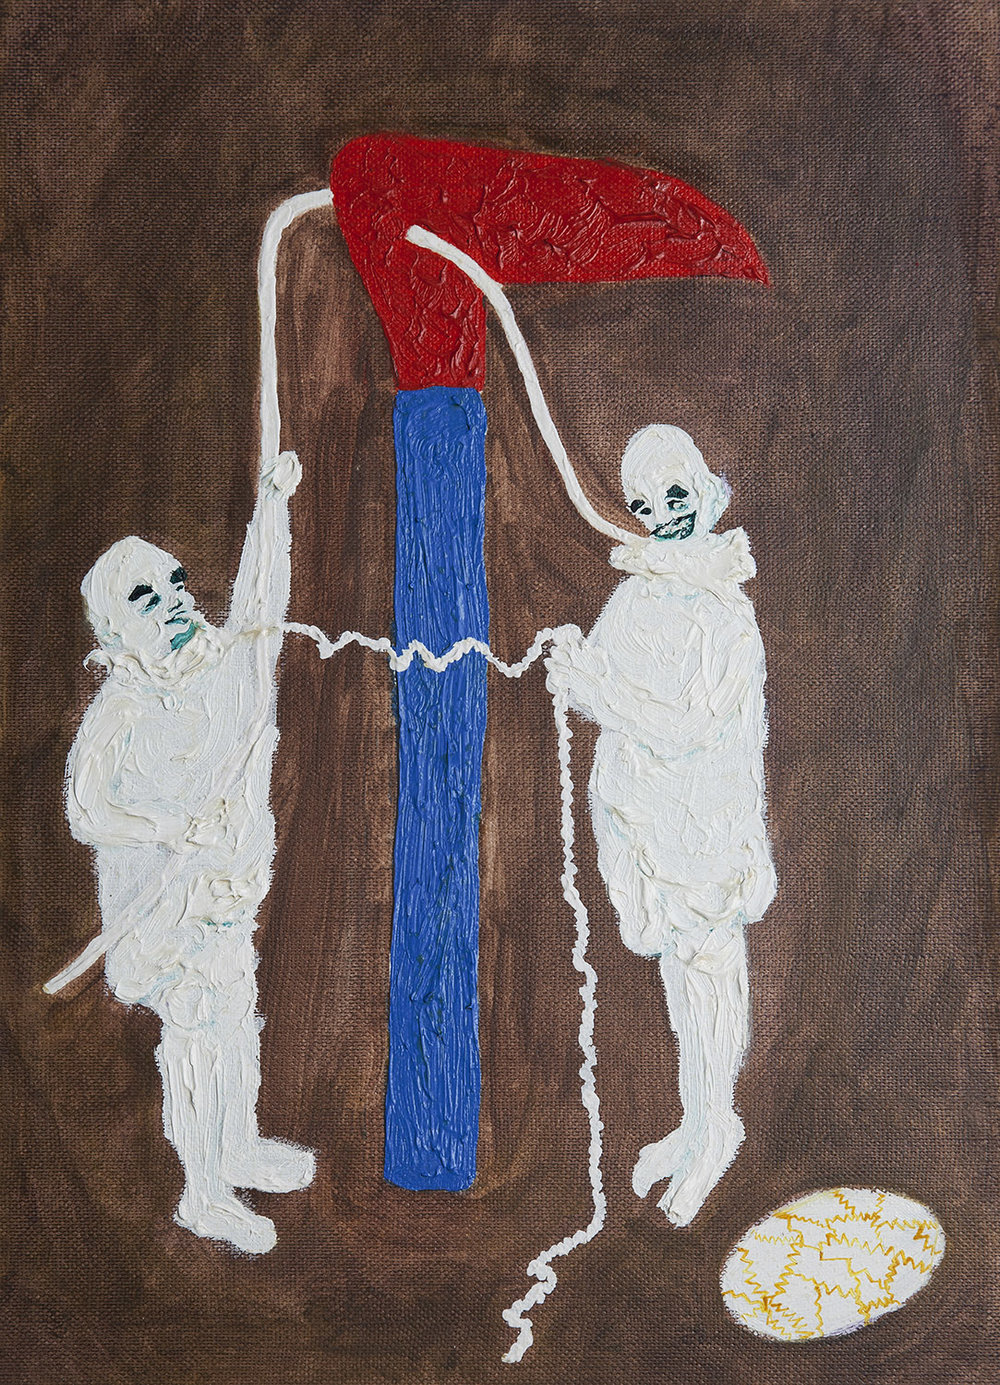 Jesters II, 2014, Oil on paper, 29x21cm, R3,000_1500.jpg